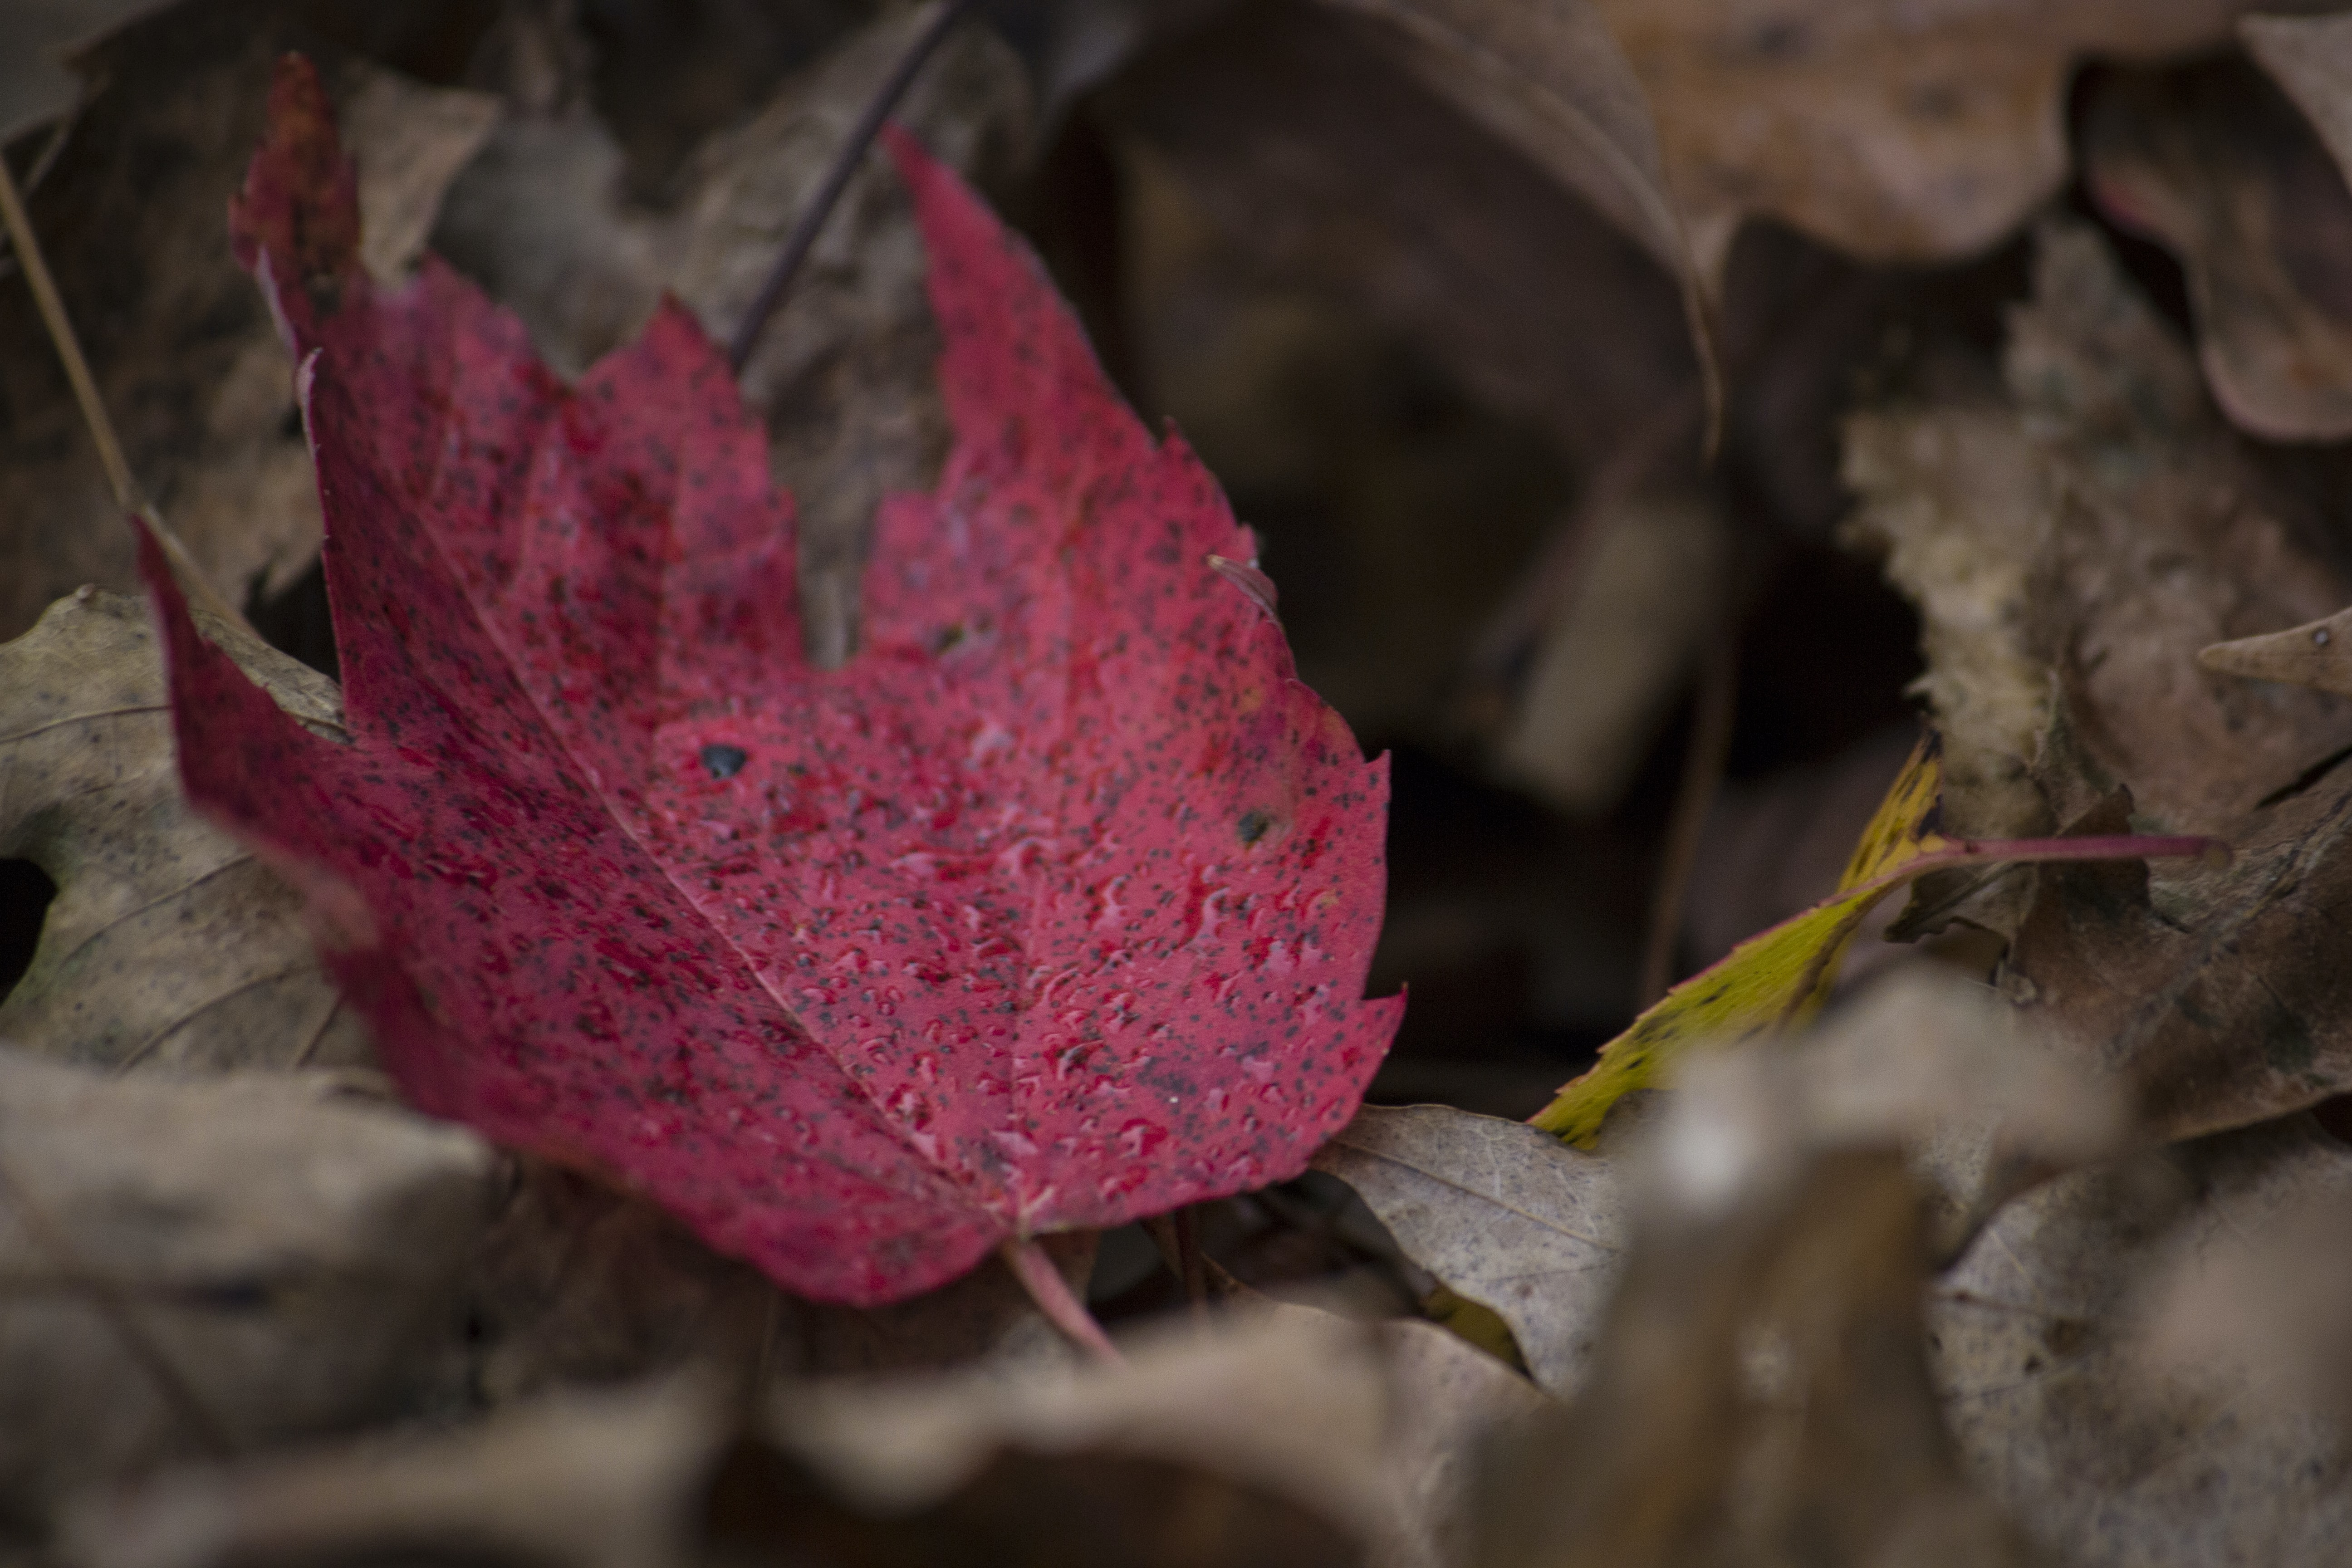 A distinctive red maple leaf among other brown autumn leaves